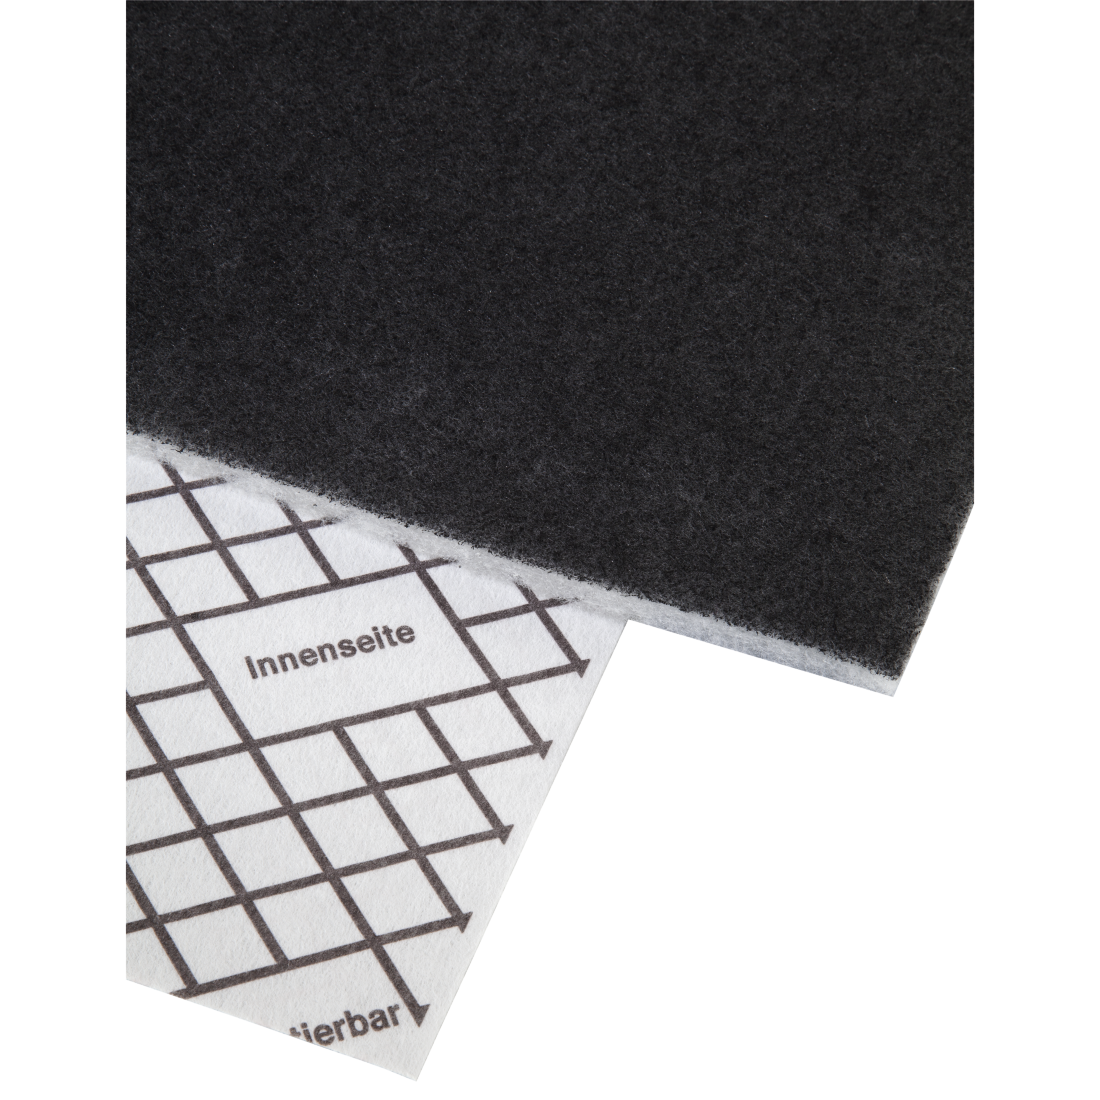 abx High-Res Image - Xavax, Flat/Activated Carbon Filter for Cooker Hoods, set of 2